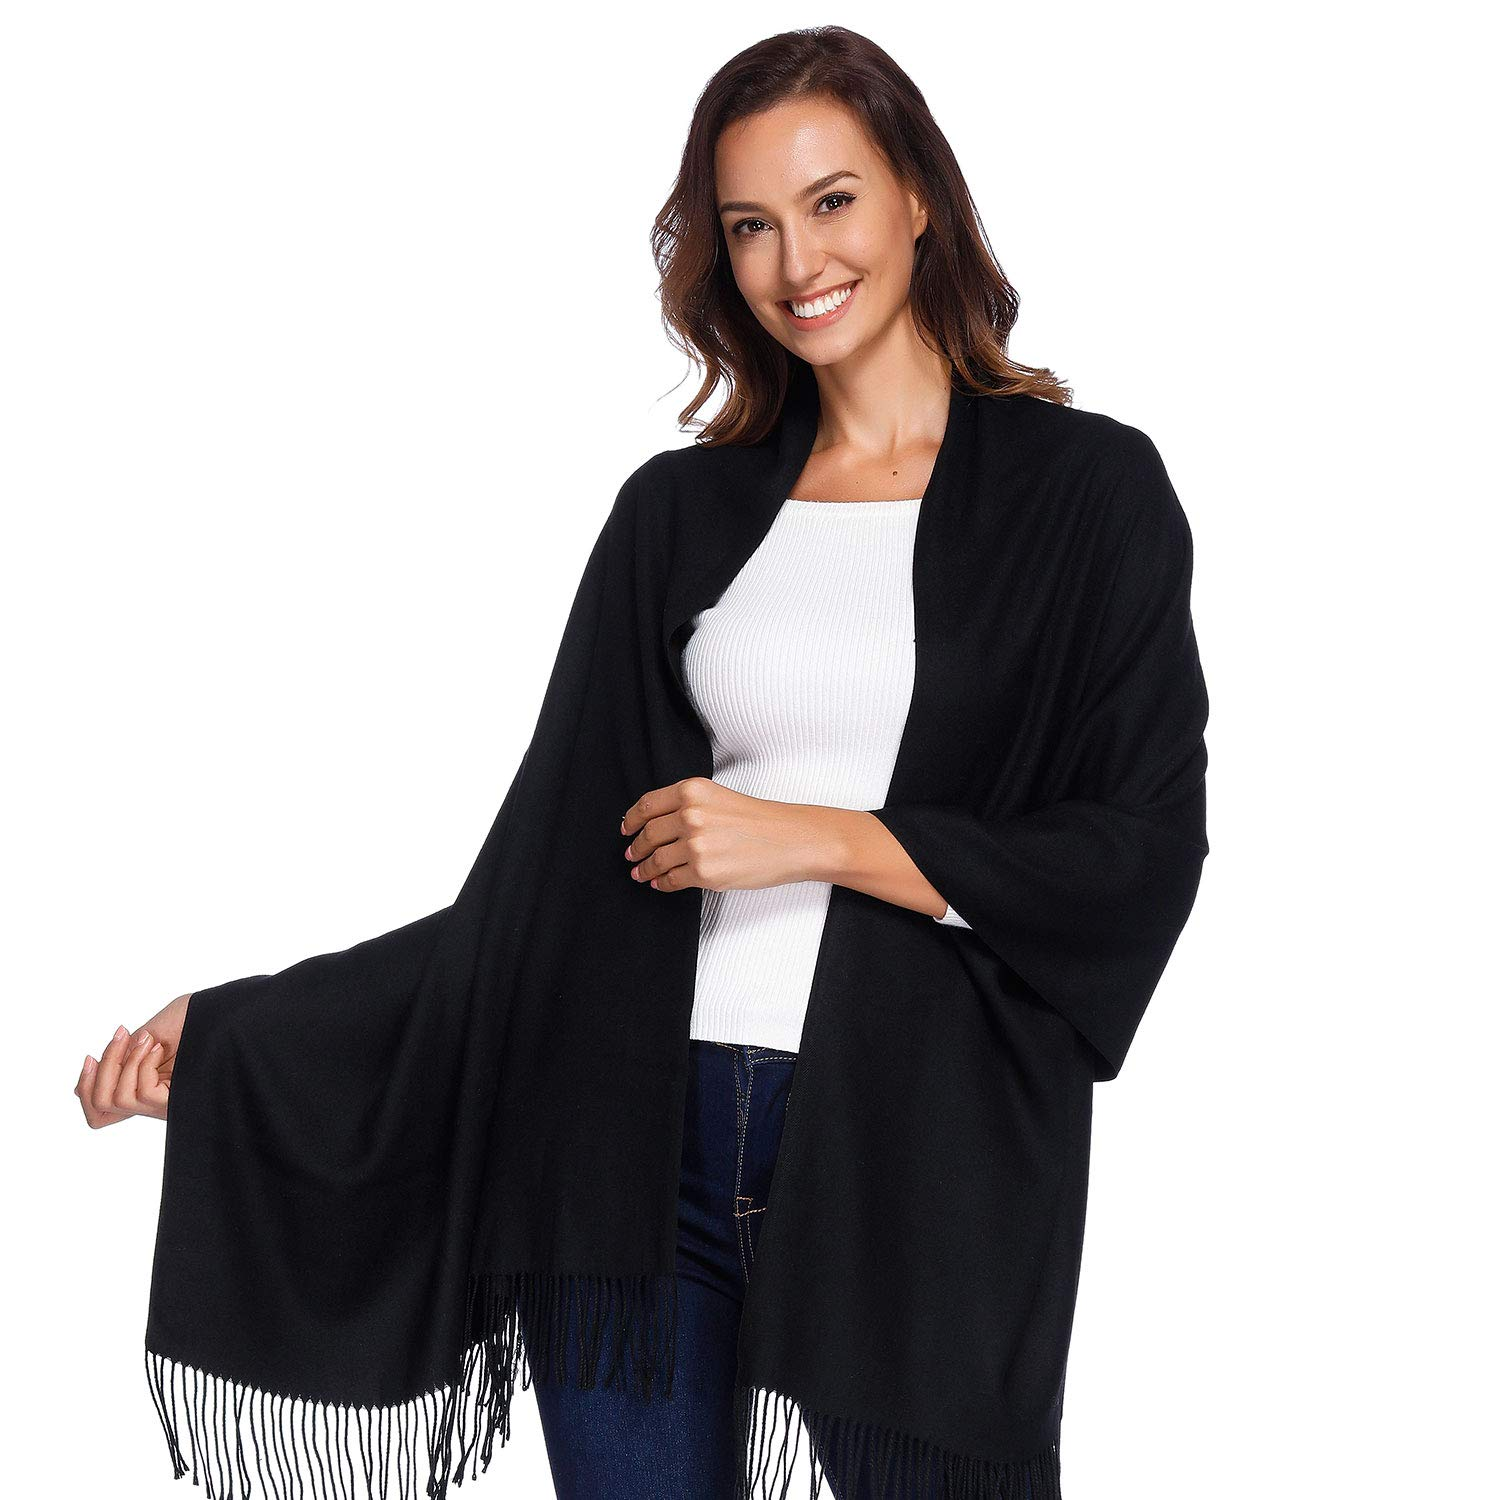 9d75f06df48 HIGH QUALITY MATERIAL –This Pure Color women s scarf is made with 10%  Cashmere + 90% Polyester